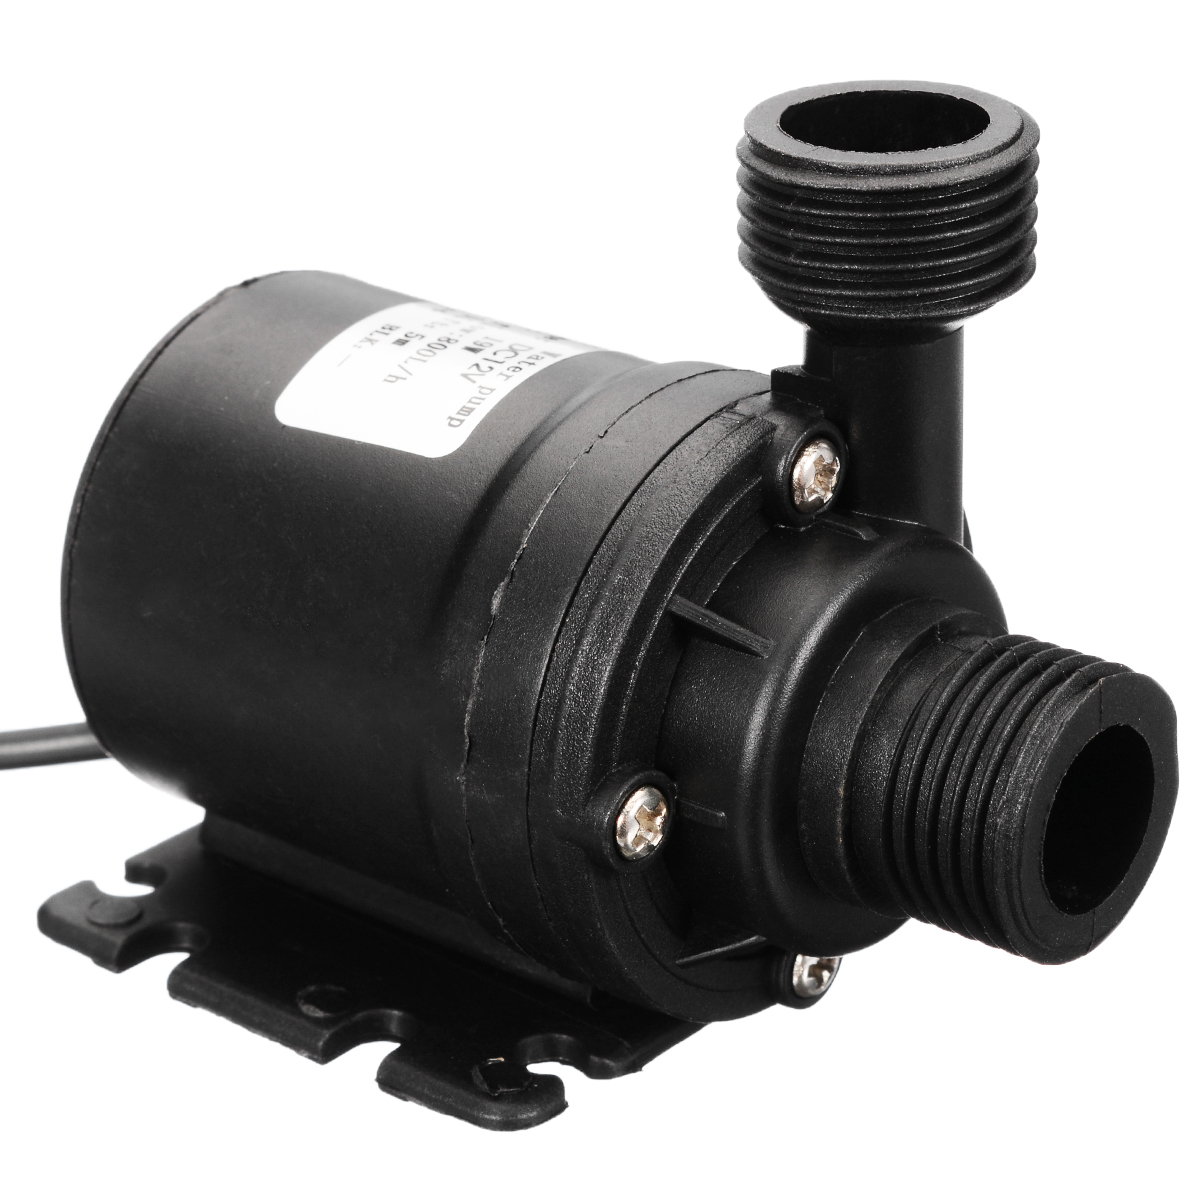 DC 12V 19W Ultra Quiet Pump Mini IP68 800L/H Brushless Motor Submersible Water Pump For Water Circulation System Cooling